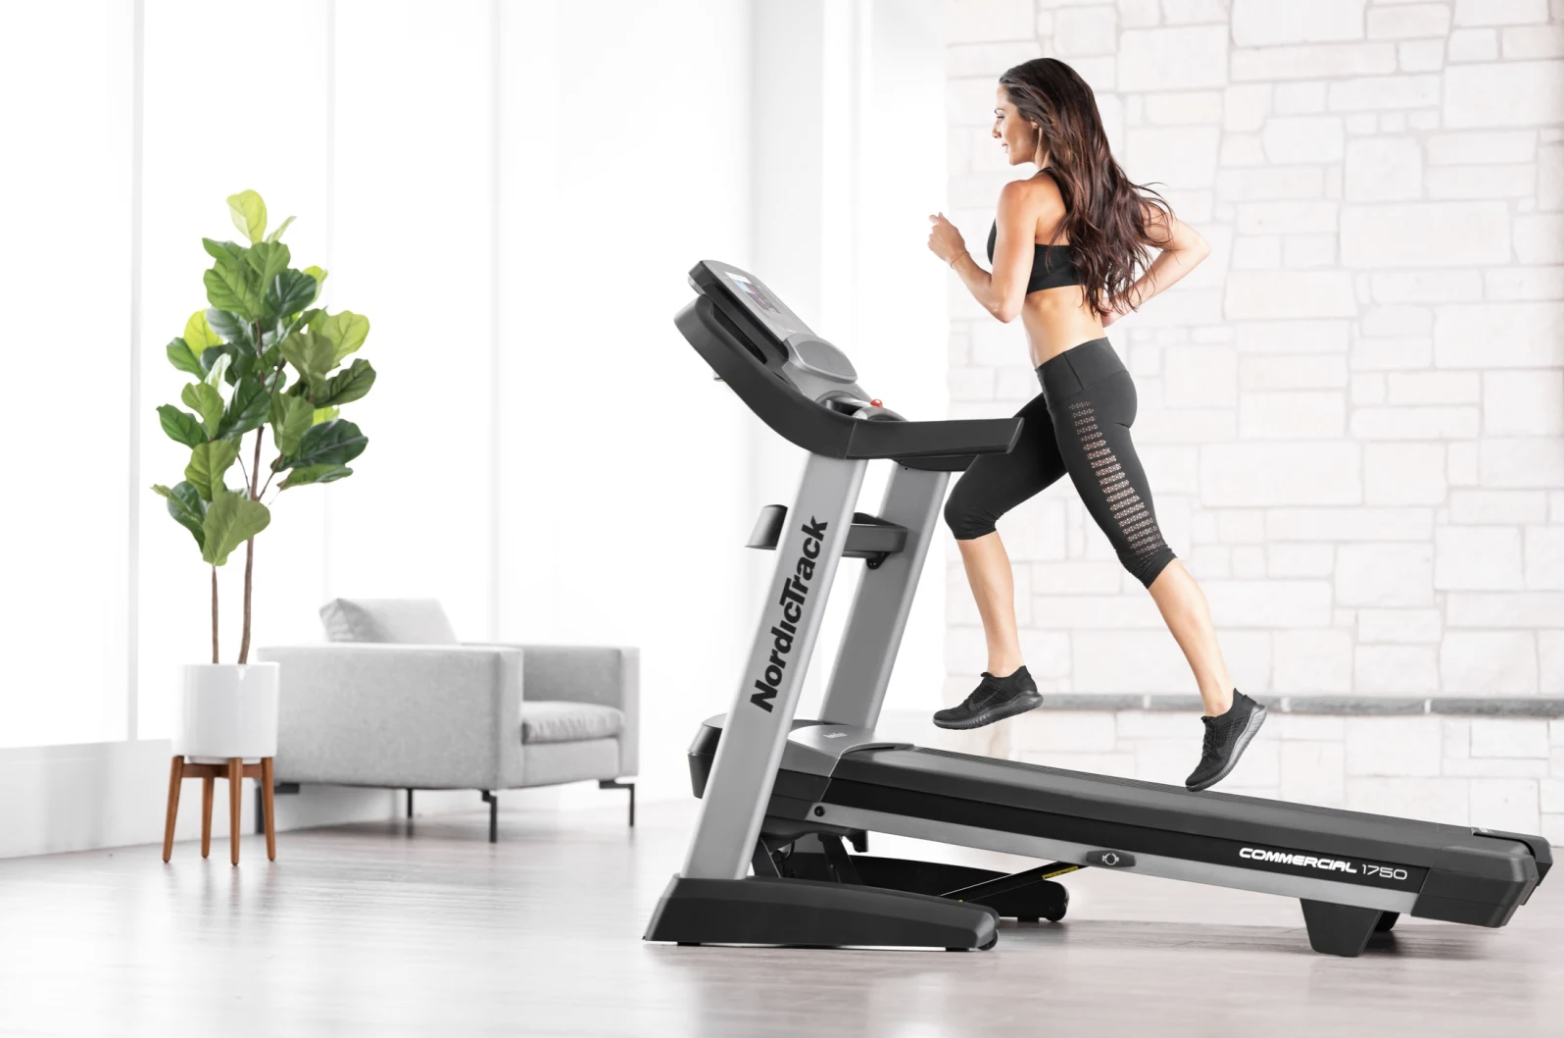 NordicTrack Commercial 1750 Treadmill Giveaway